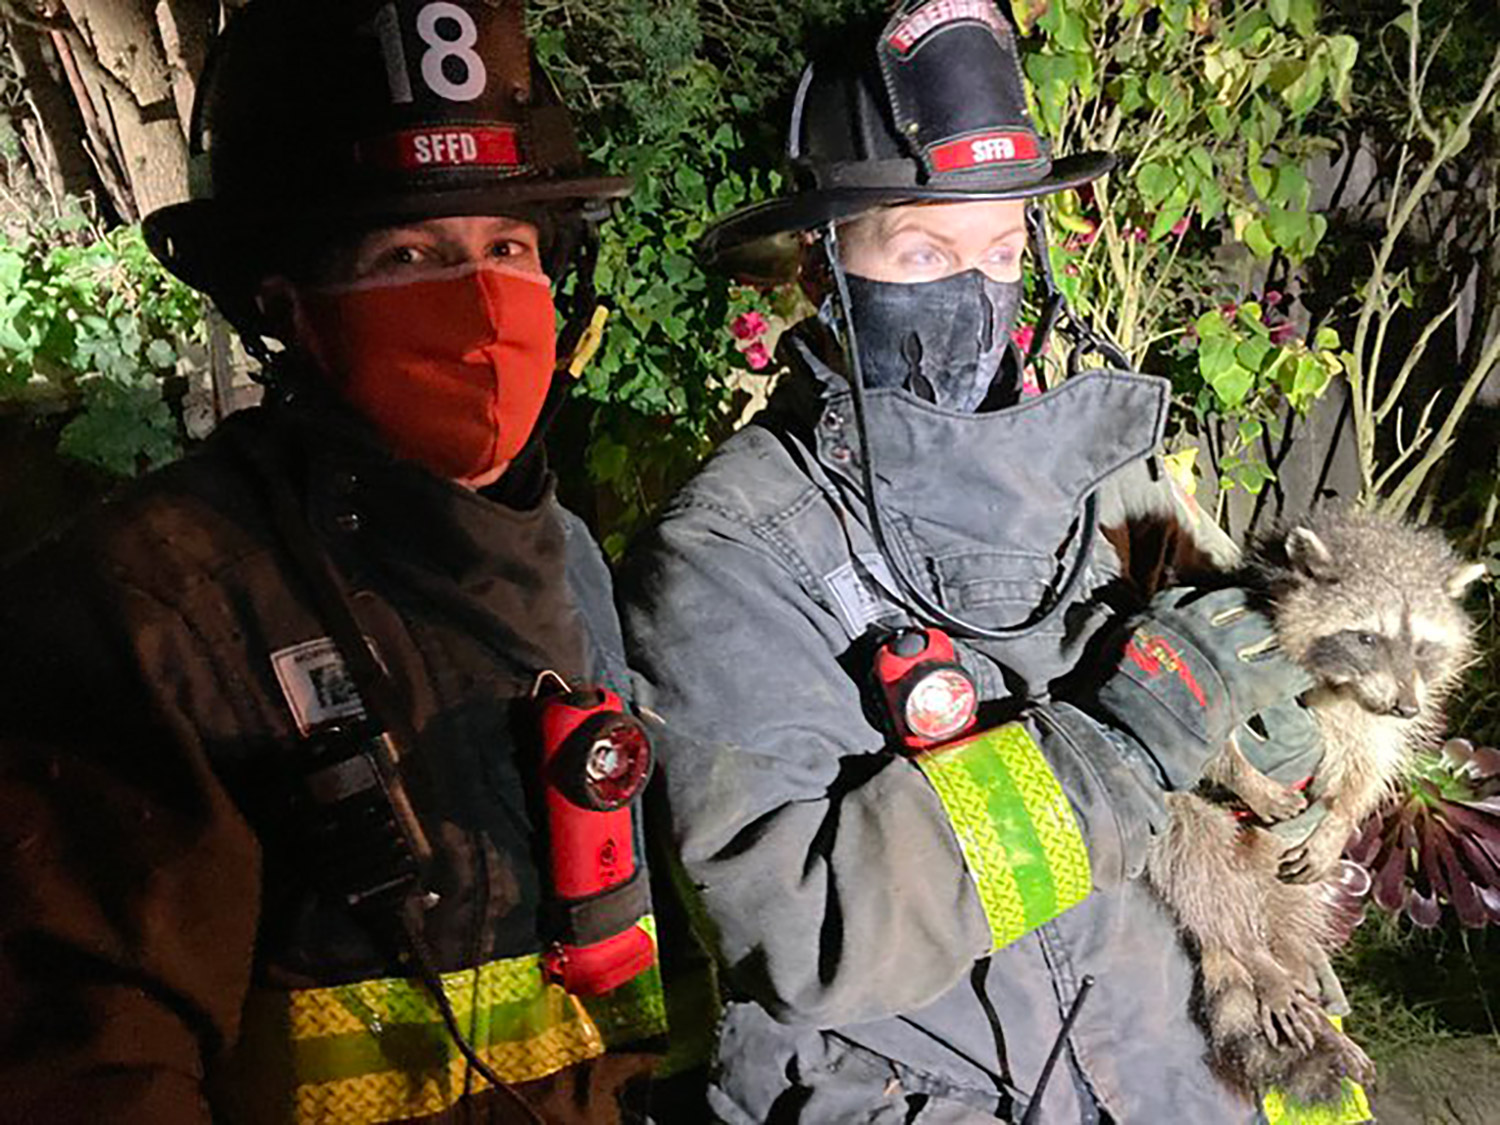 Raccoon Rescued by Fire Dept